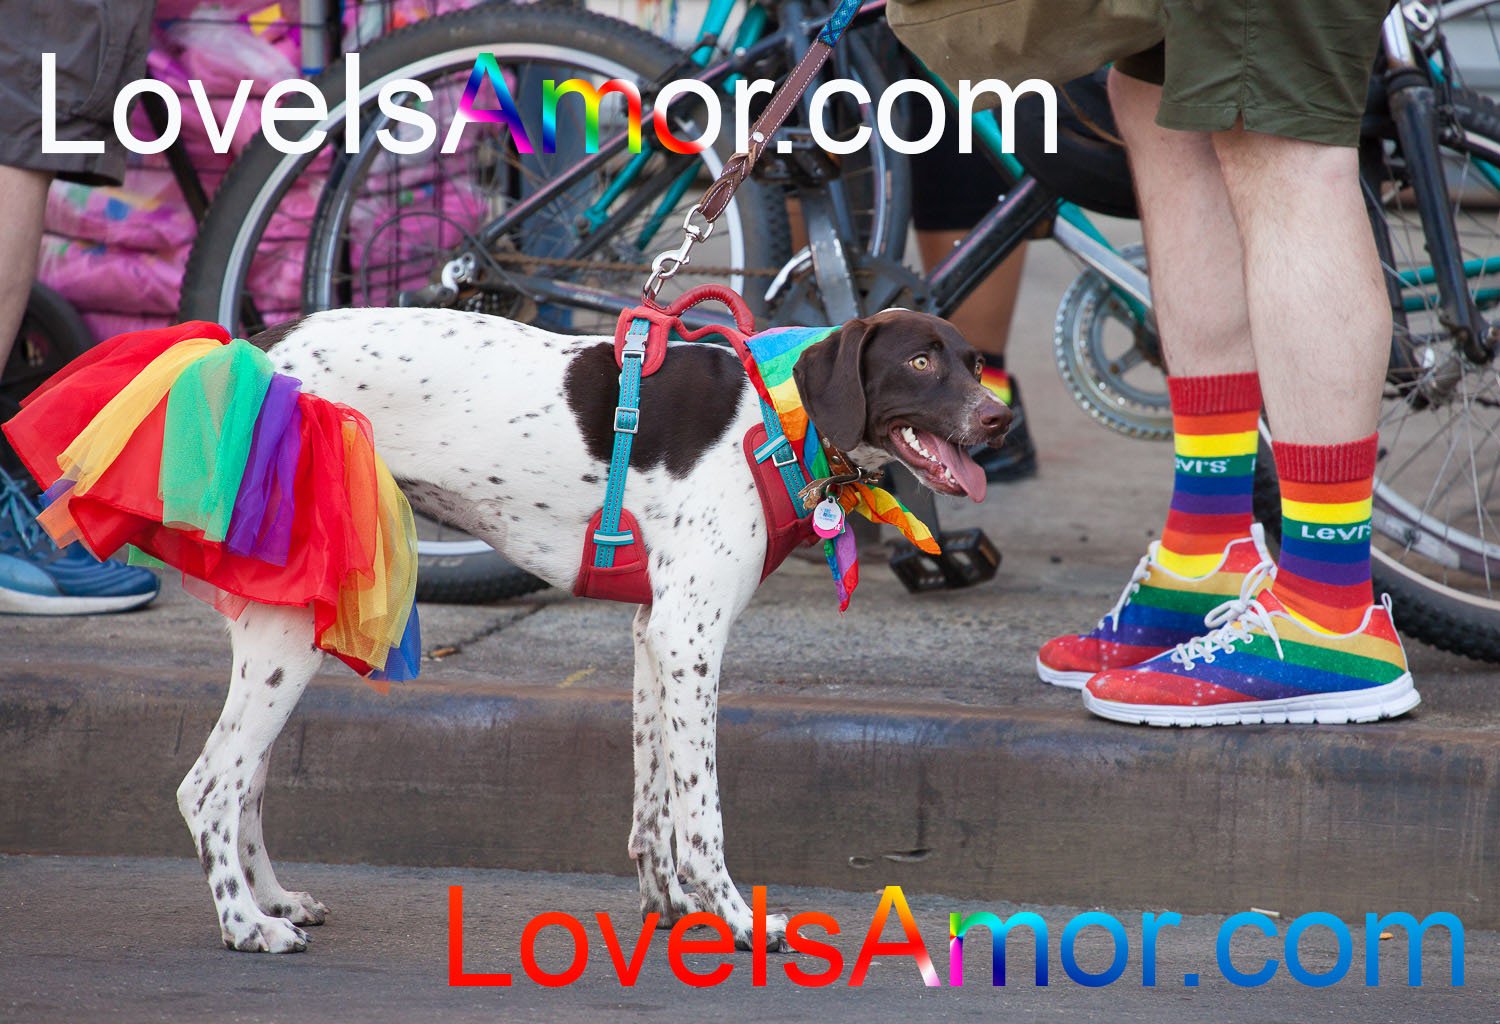 Saturday, June 8th, 2019. Brooklyn, New York City - Man and his dog at the Brooklyn Pride Parade/March. This year, Brooklyn celebrated the 23rd Annual Brooklyn Pride Parade/March. Brooklyn Pride was ranked within the top 10 of the 20 best places in the US to celebrate pride by matadornetwork.com. This year is the 50th anniversary of the Stonewall revolution. Photo by LoveIsAmor.com